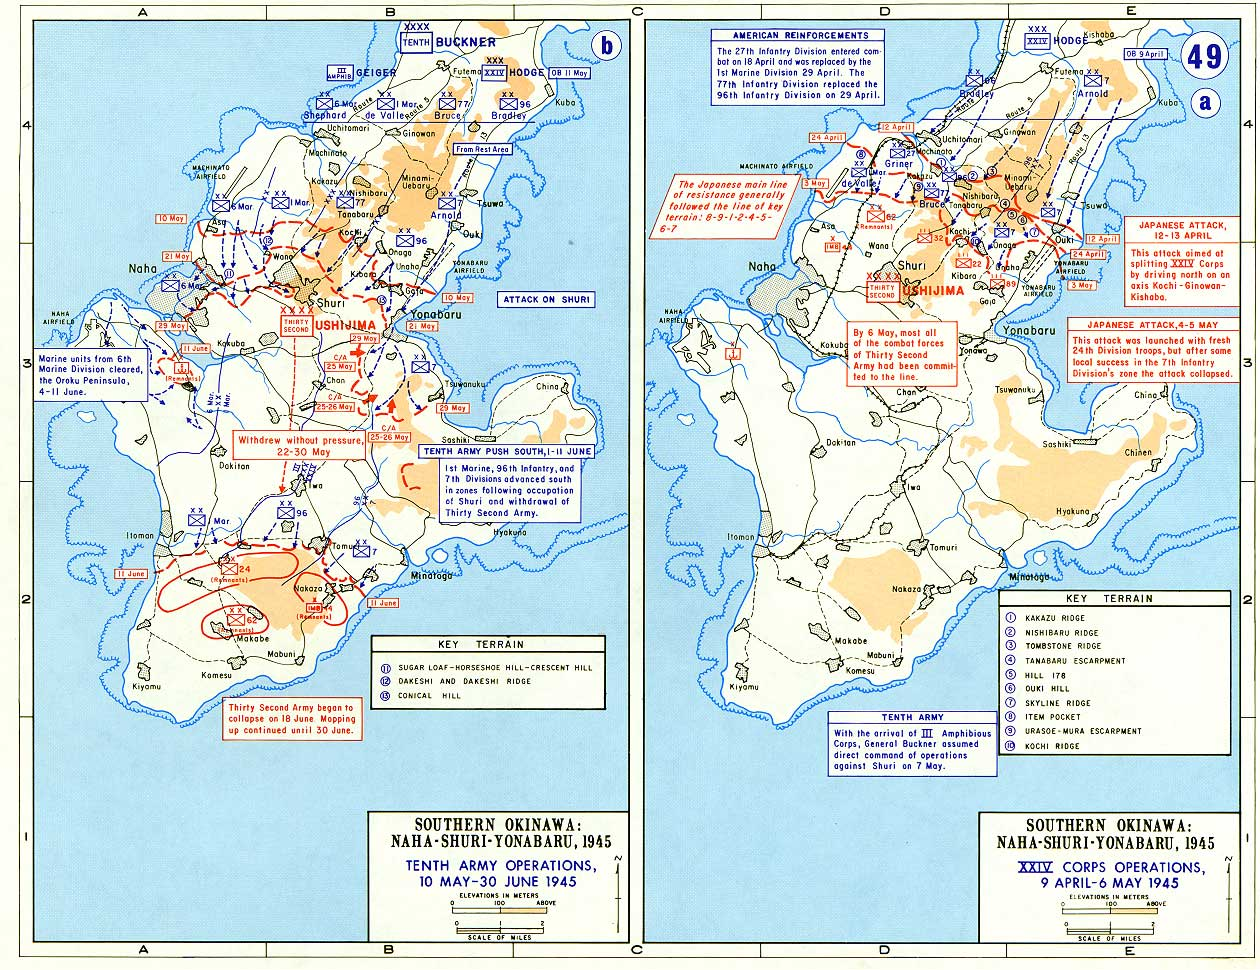 Ivo jima maps historical resources about the second world war invasion of iwo jima and okinawa 9 april 30 june 1945 gumiabroncs Choice Image